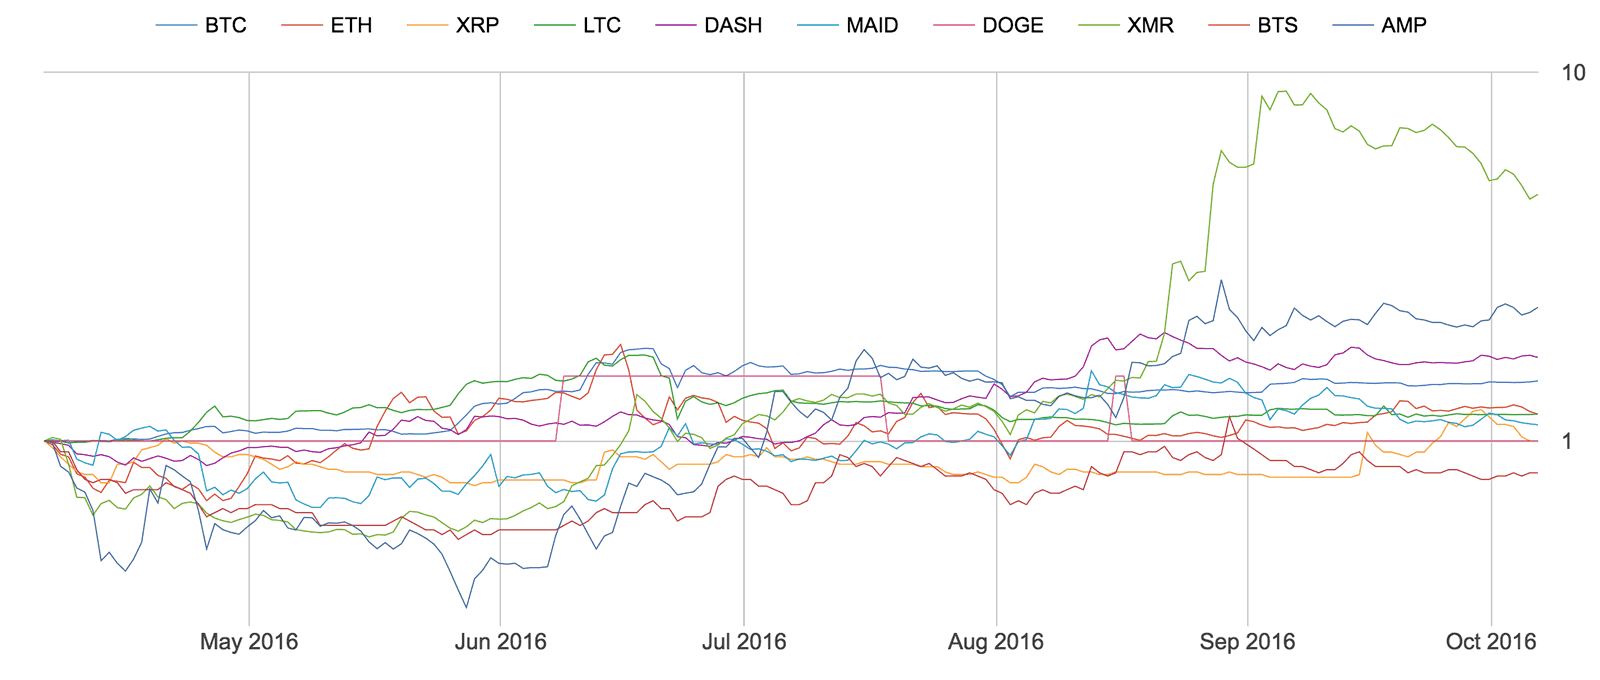 Top 10 coins, returns starting 6 months ago